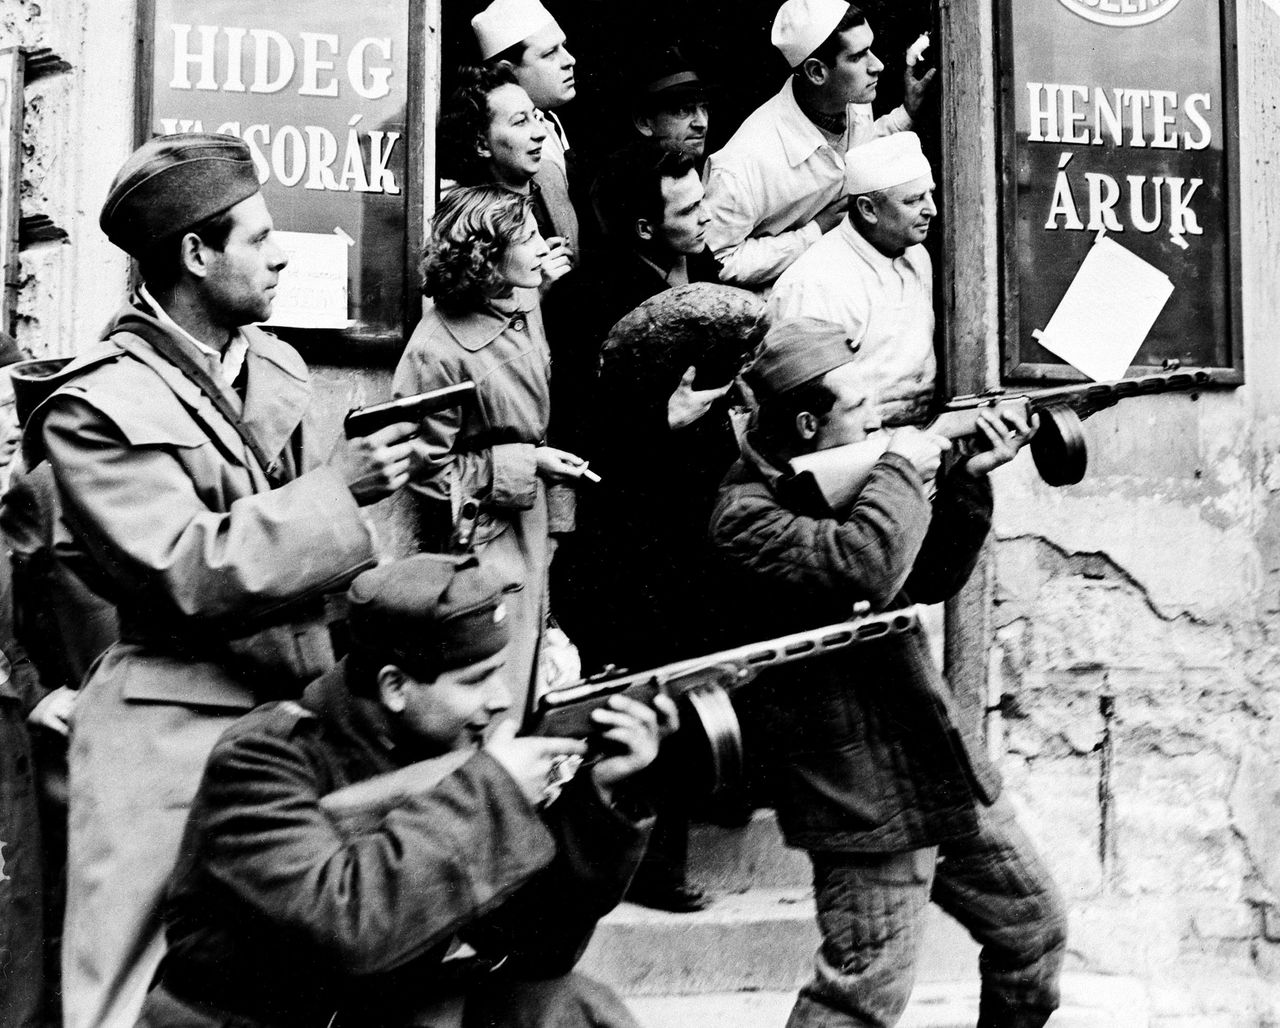 Tijdens de Hongaarse opstand in 1956 beschieten opstandelingen het gebouw van de machtige en gehate geheime politie. Foto AP ** FILE ** Patrons and clerks at a local store look on as members of the Hungarian revolutionary forces take aim at Communist secret police officers, in Budapest, Hungary, in this Nov. 2, 1956 file photo. The uprising began on Oct. 23, 1956 with demonstrations against the Stalinist regime in Budapest and was crushed eleven days later by Soviet tanks amid bitter fighting. Some 2,500 people were killed and a further 200,000 forced into exile. (AP Photo/File)